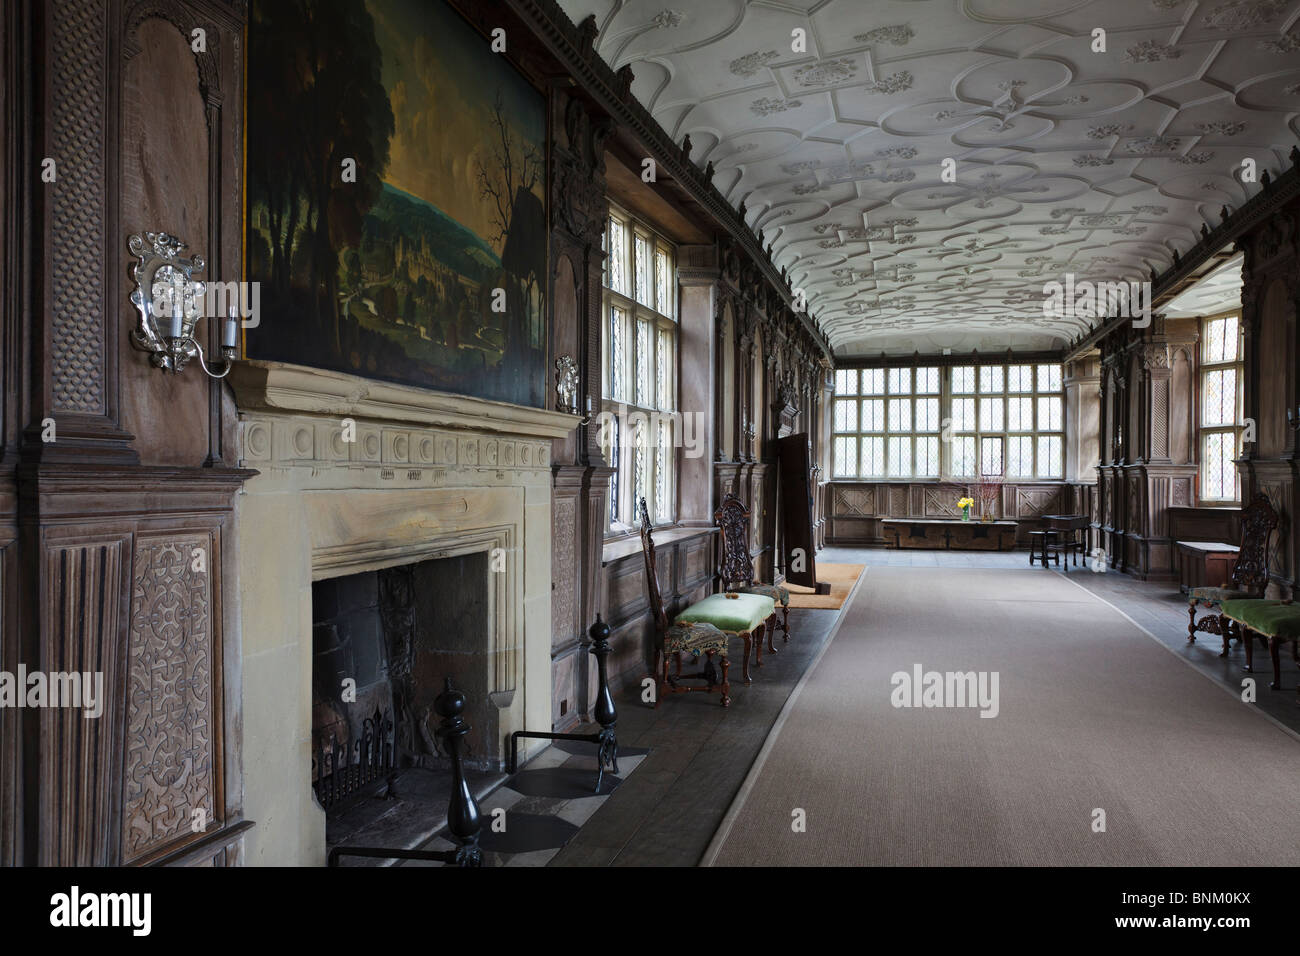 Fireplace And Painting Of Haddon Hall By Rex Whistler In The Long Gallery  At Haddon Hall, Near Bakewell, Derbyshire.